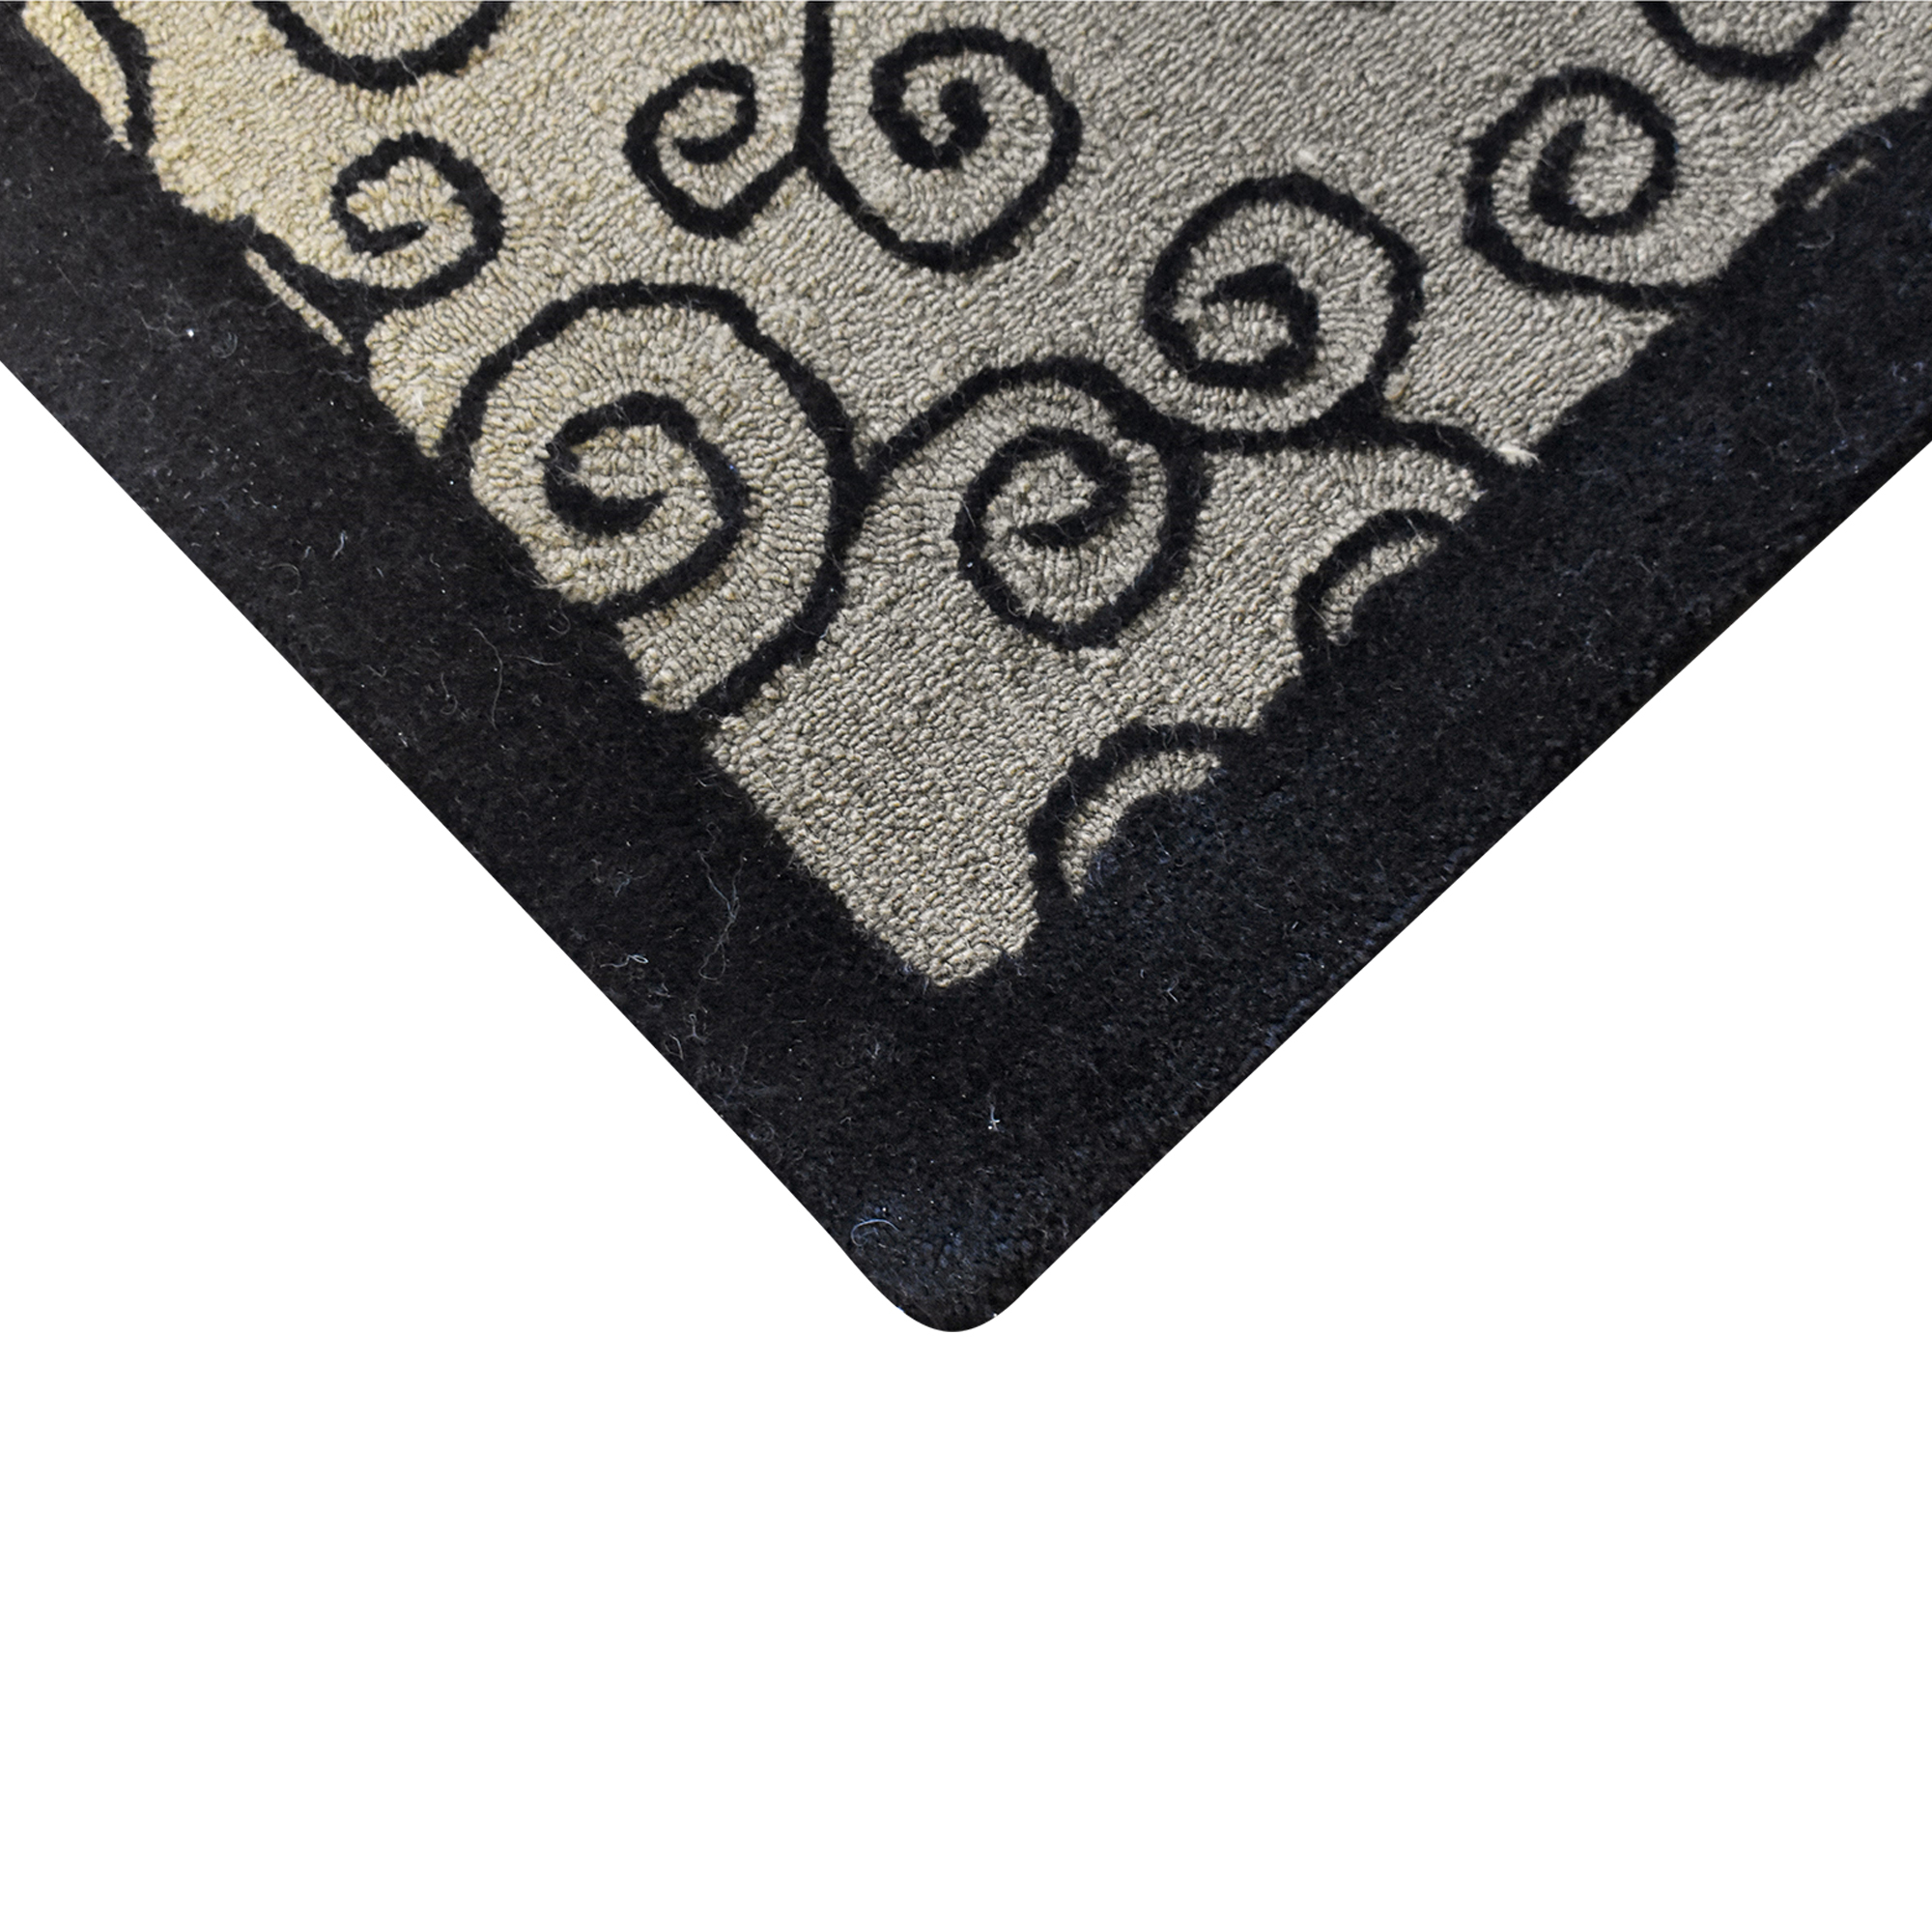 Contemporary Patterned Area Rug for sale